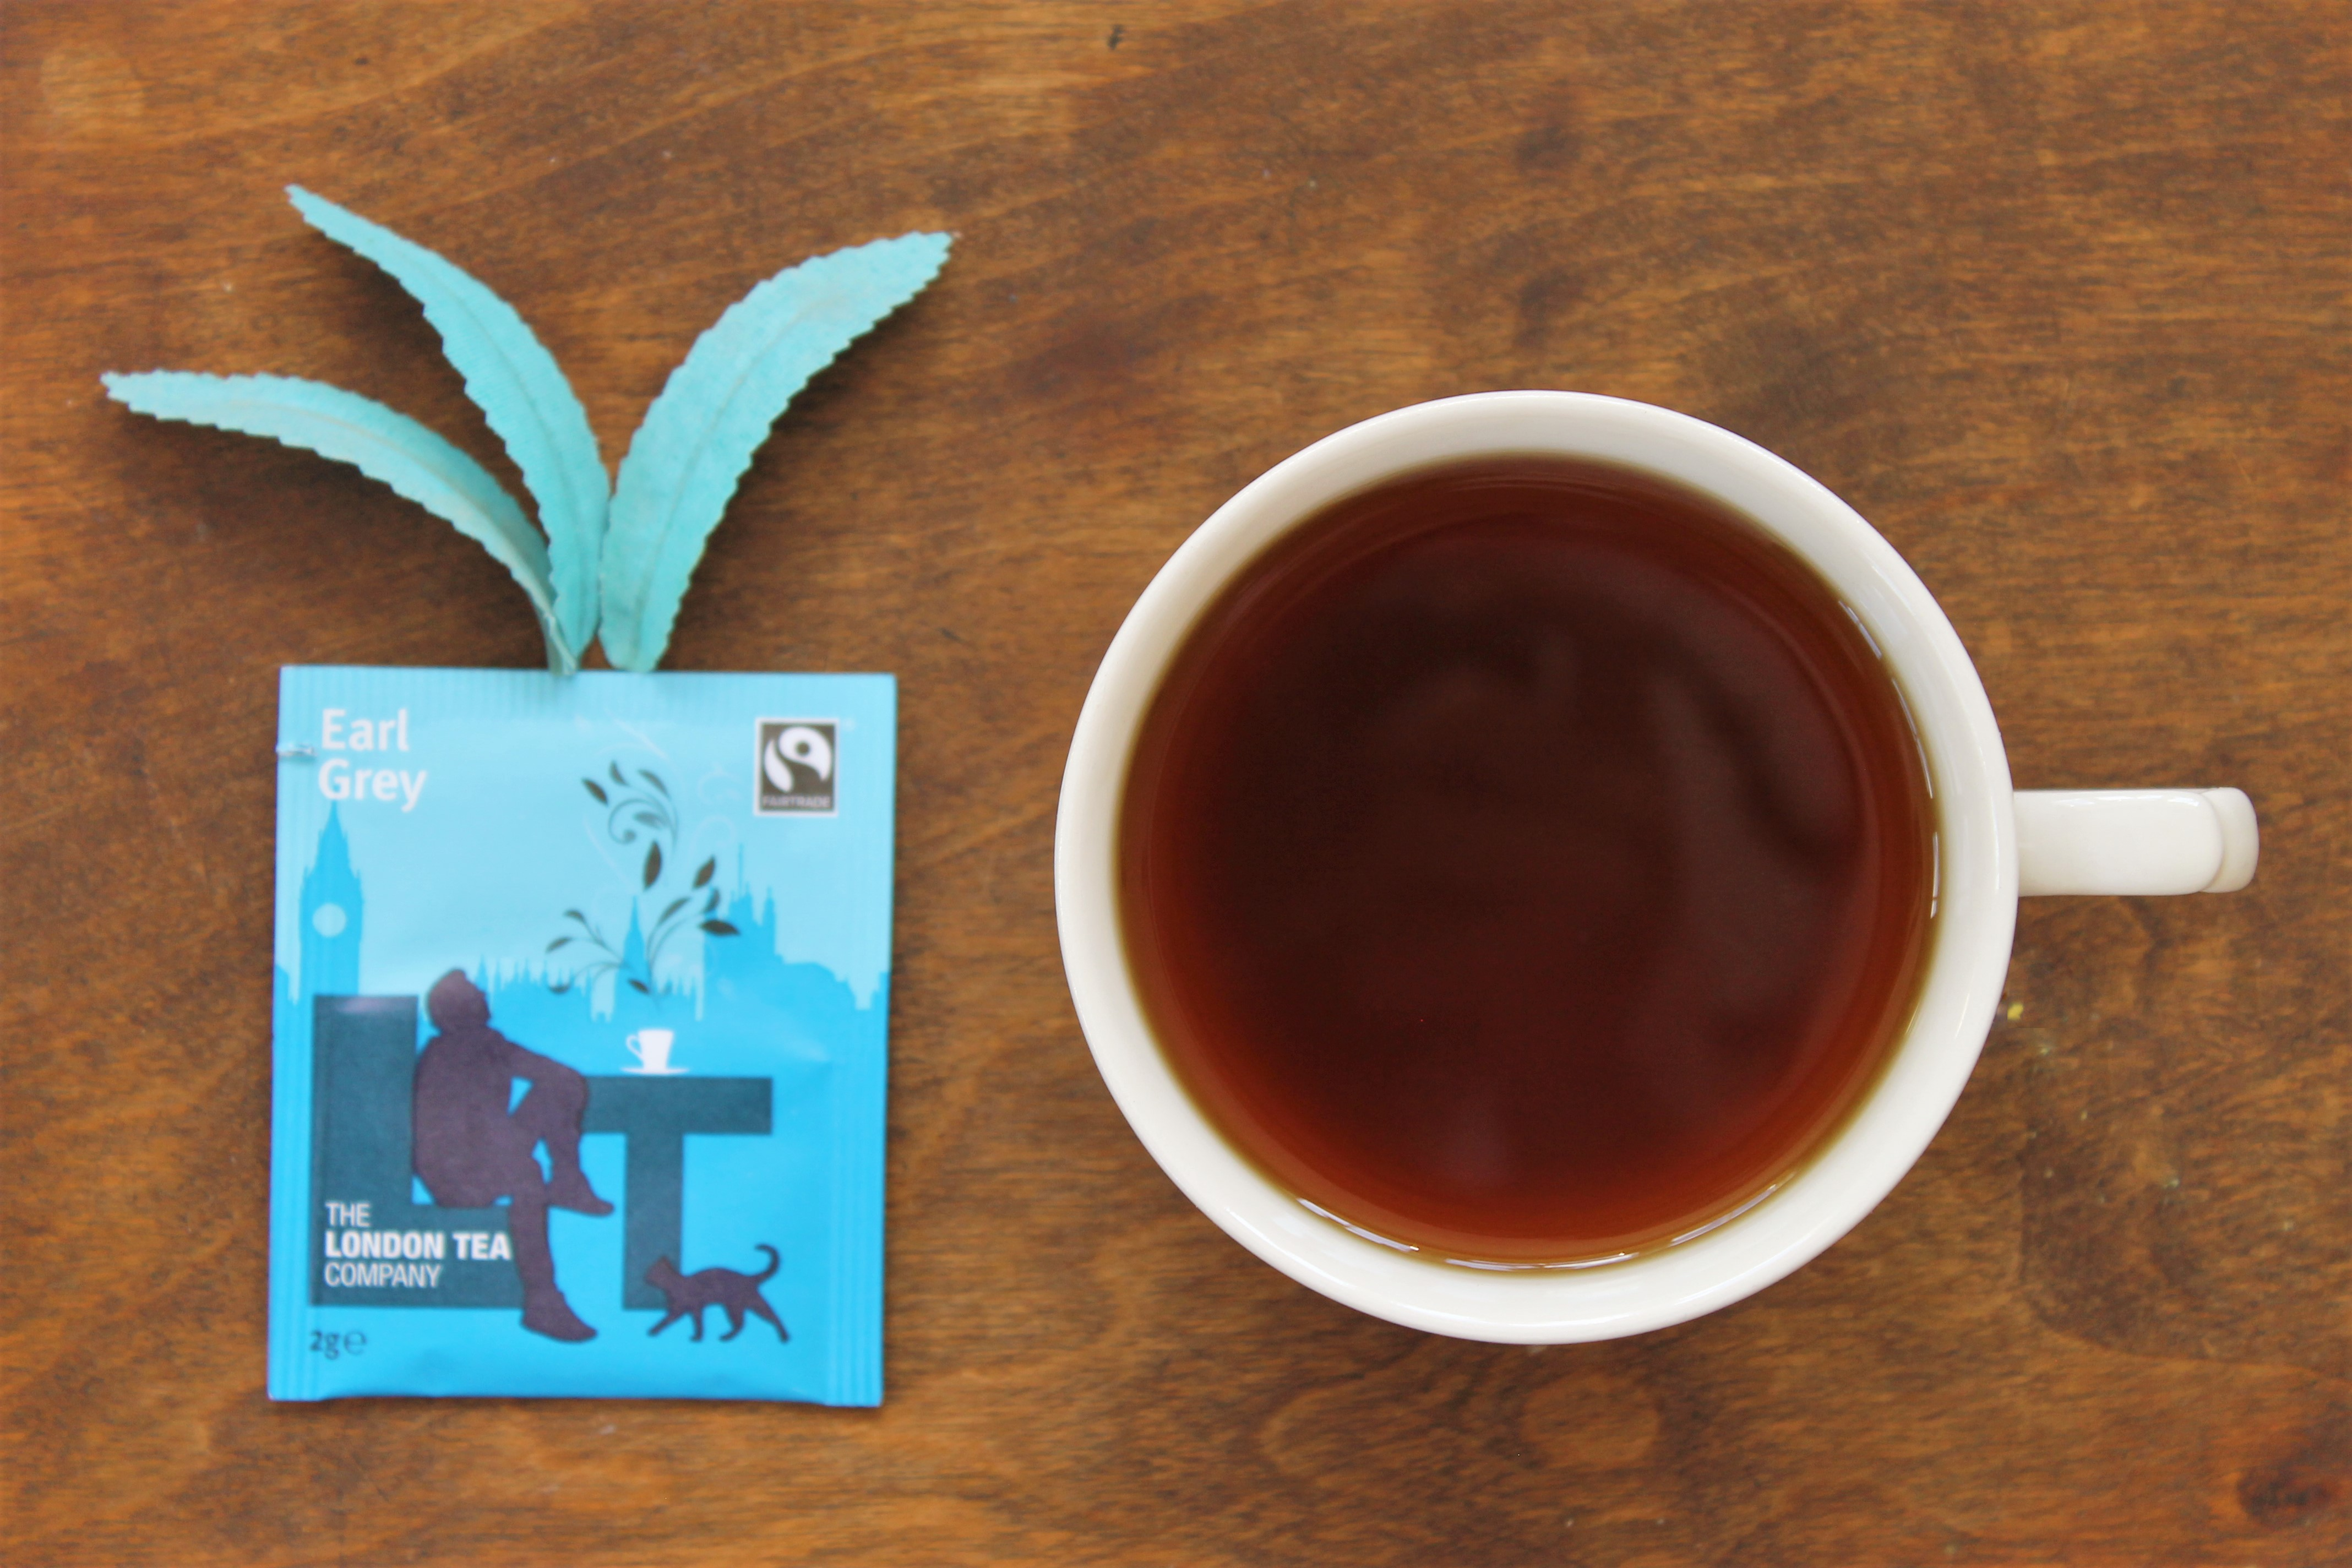 The London Tea Company Earl Grey Review